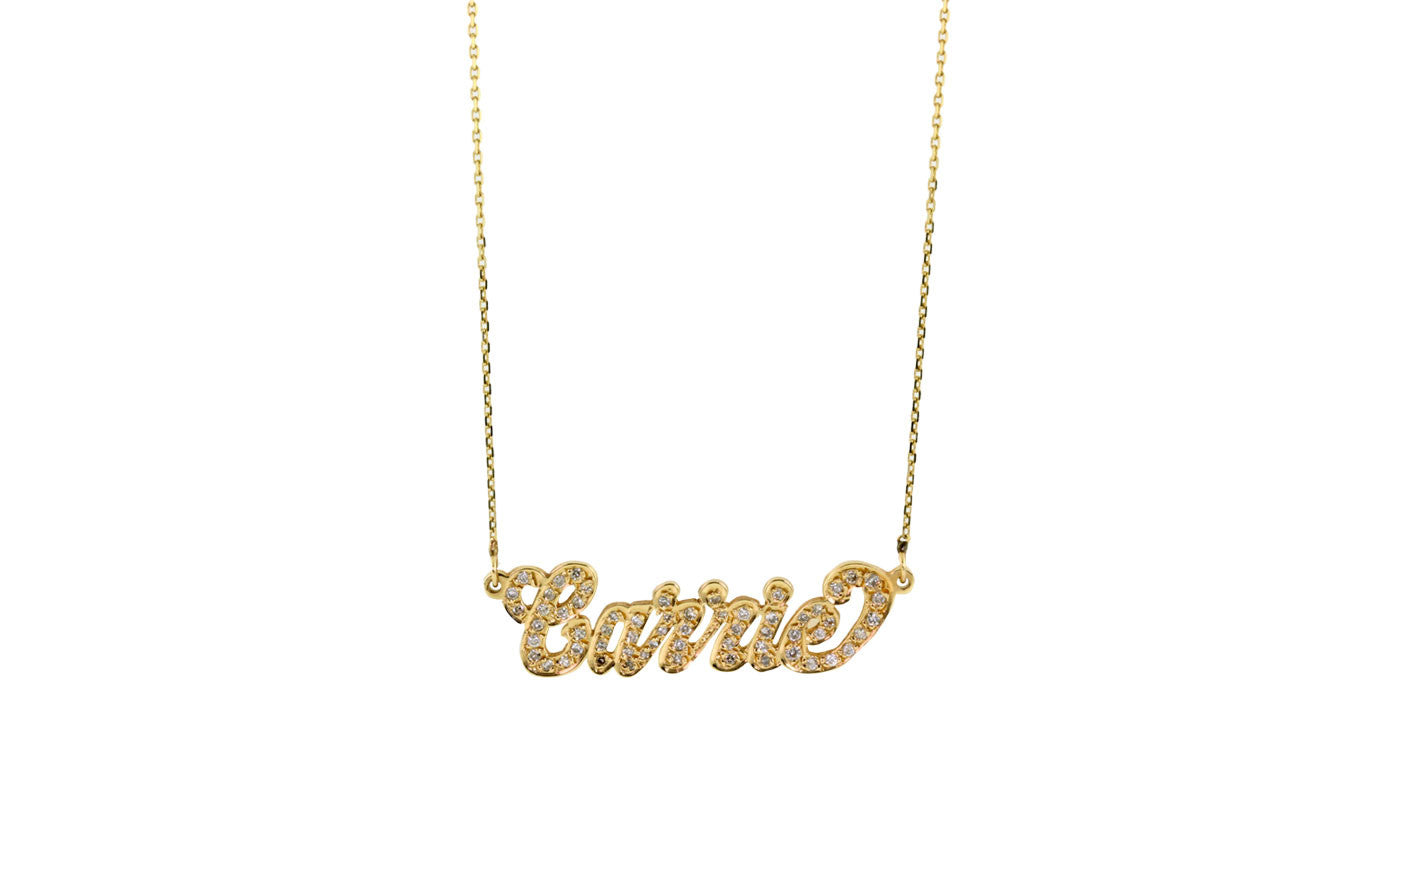 c641c0ef6247d Custom Nameplate Necklace